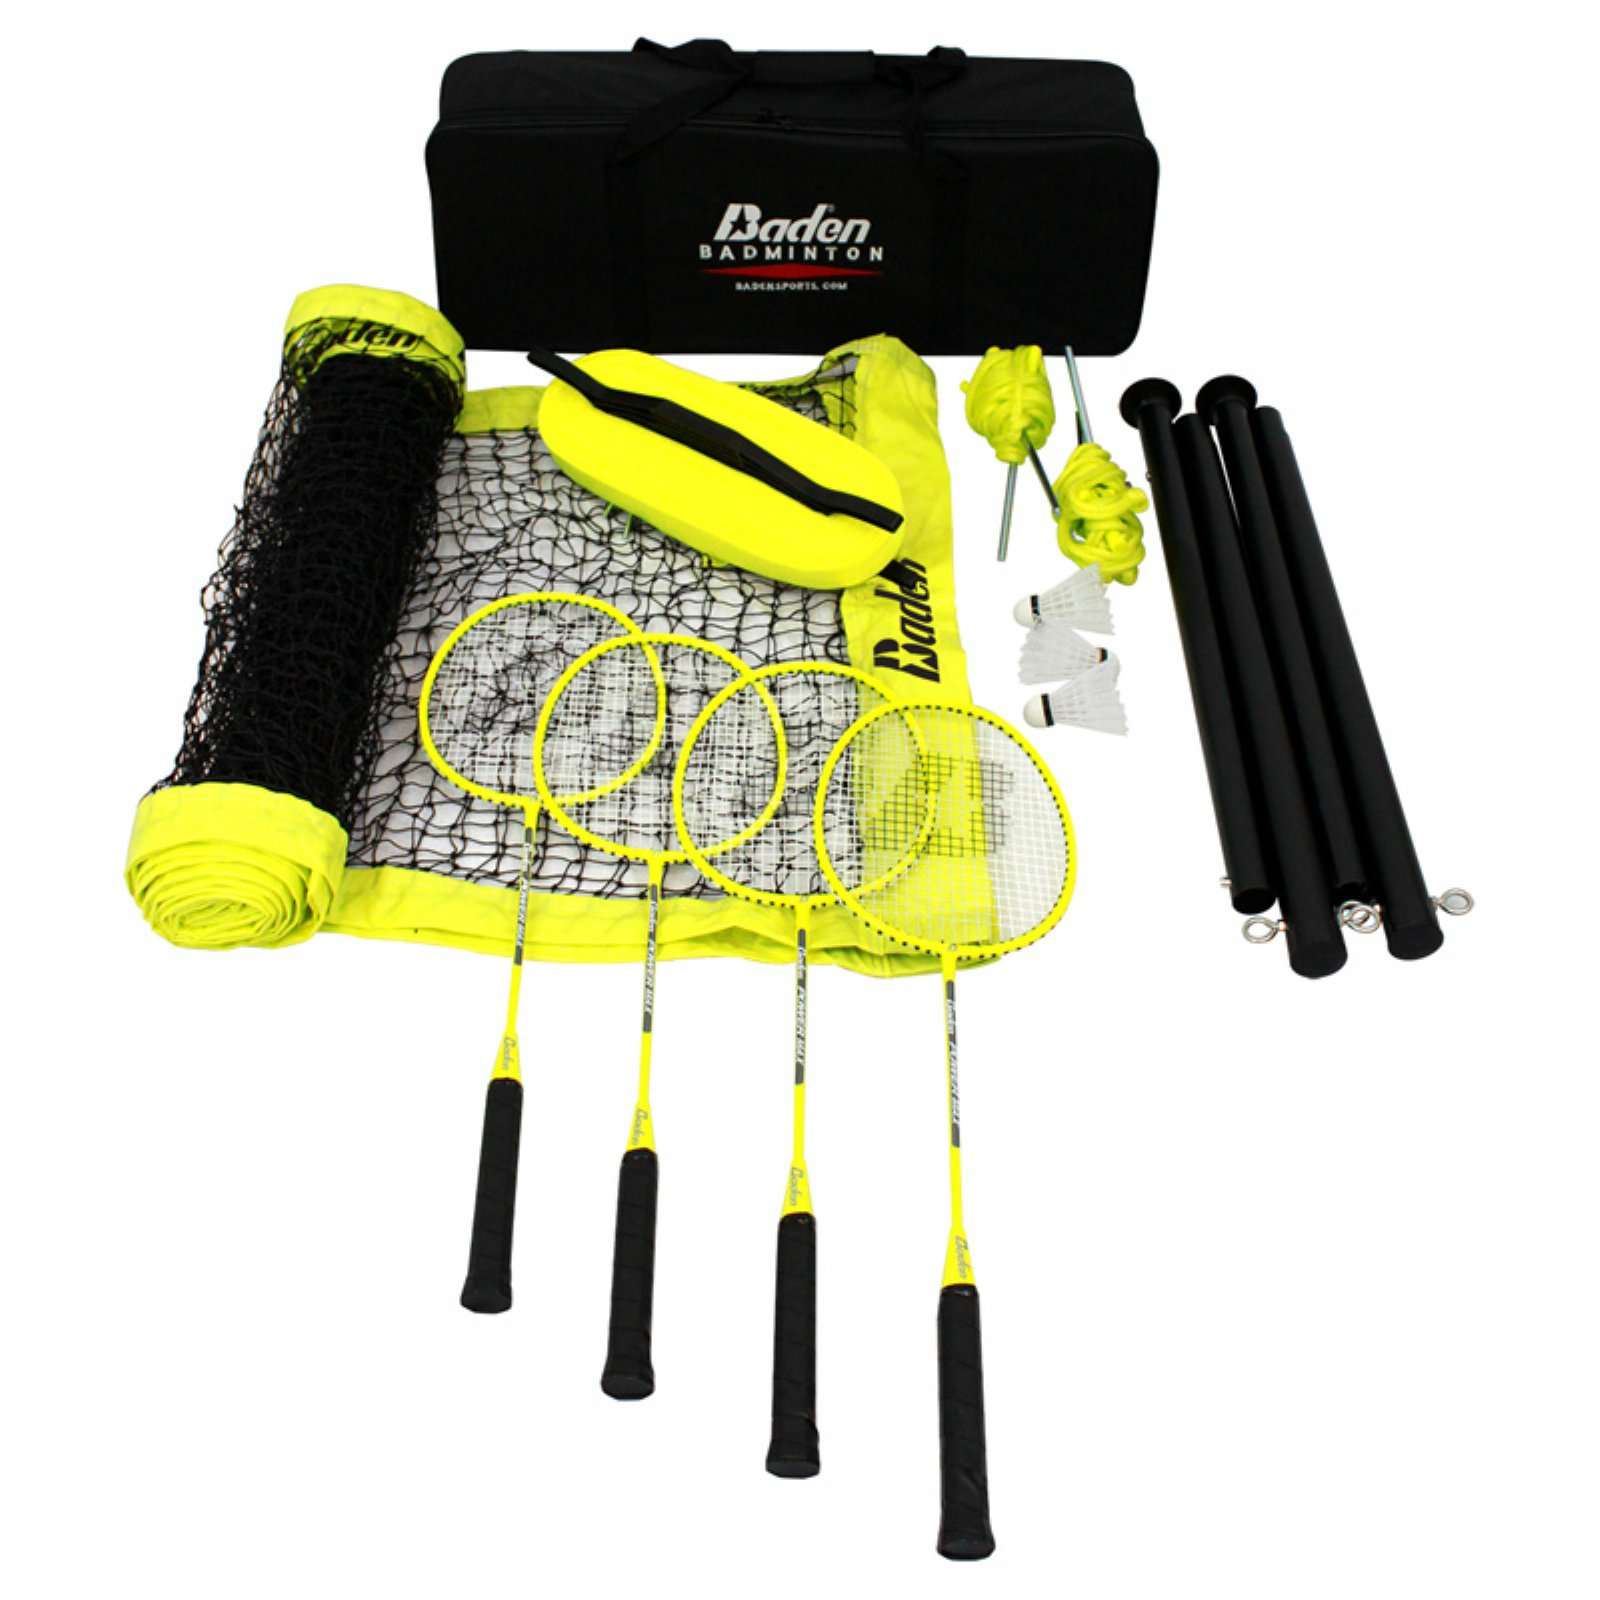 Baden Sports Champions Series Badminton Set